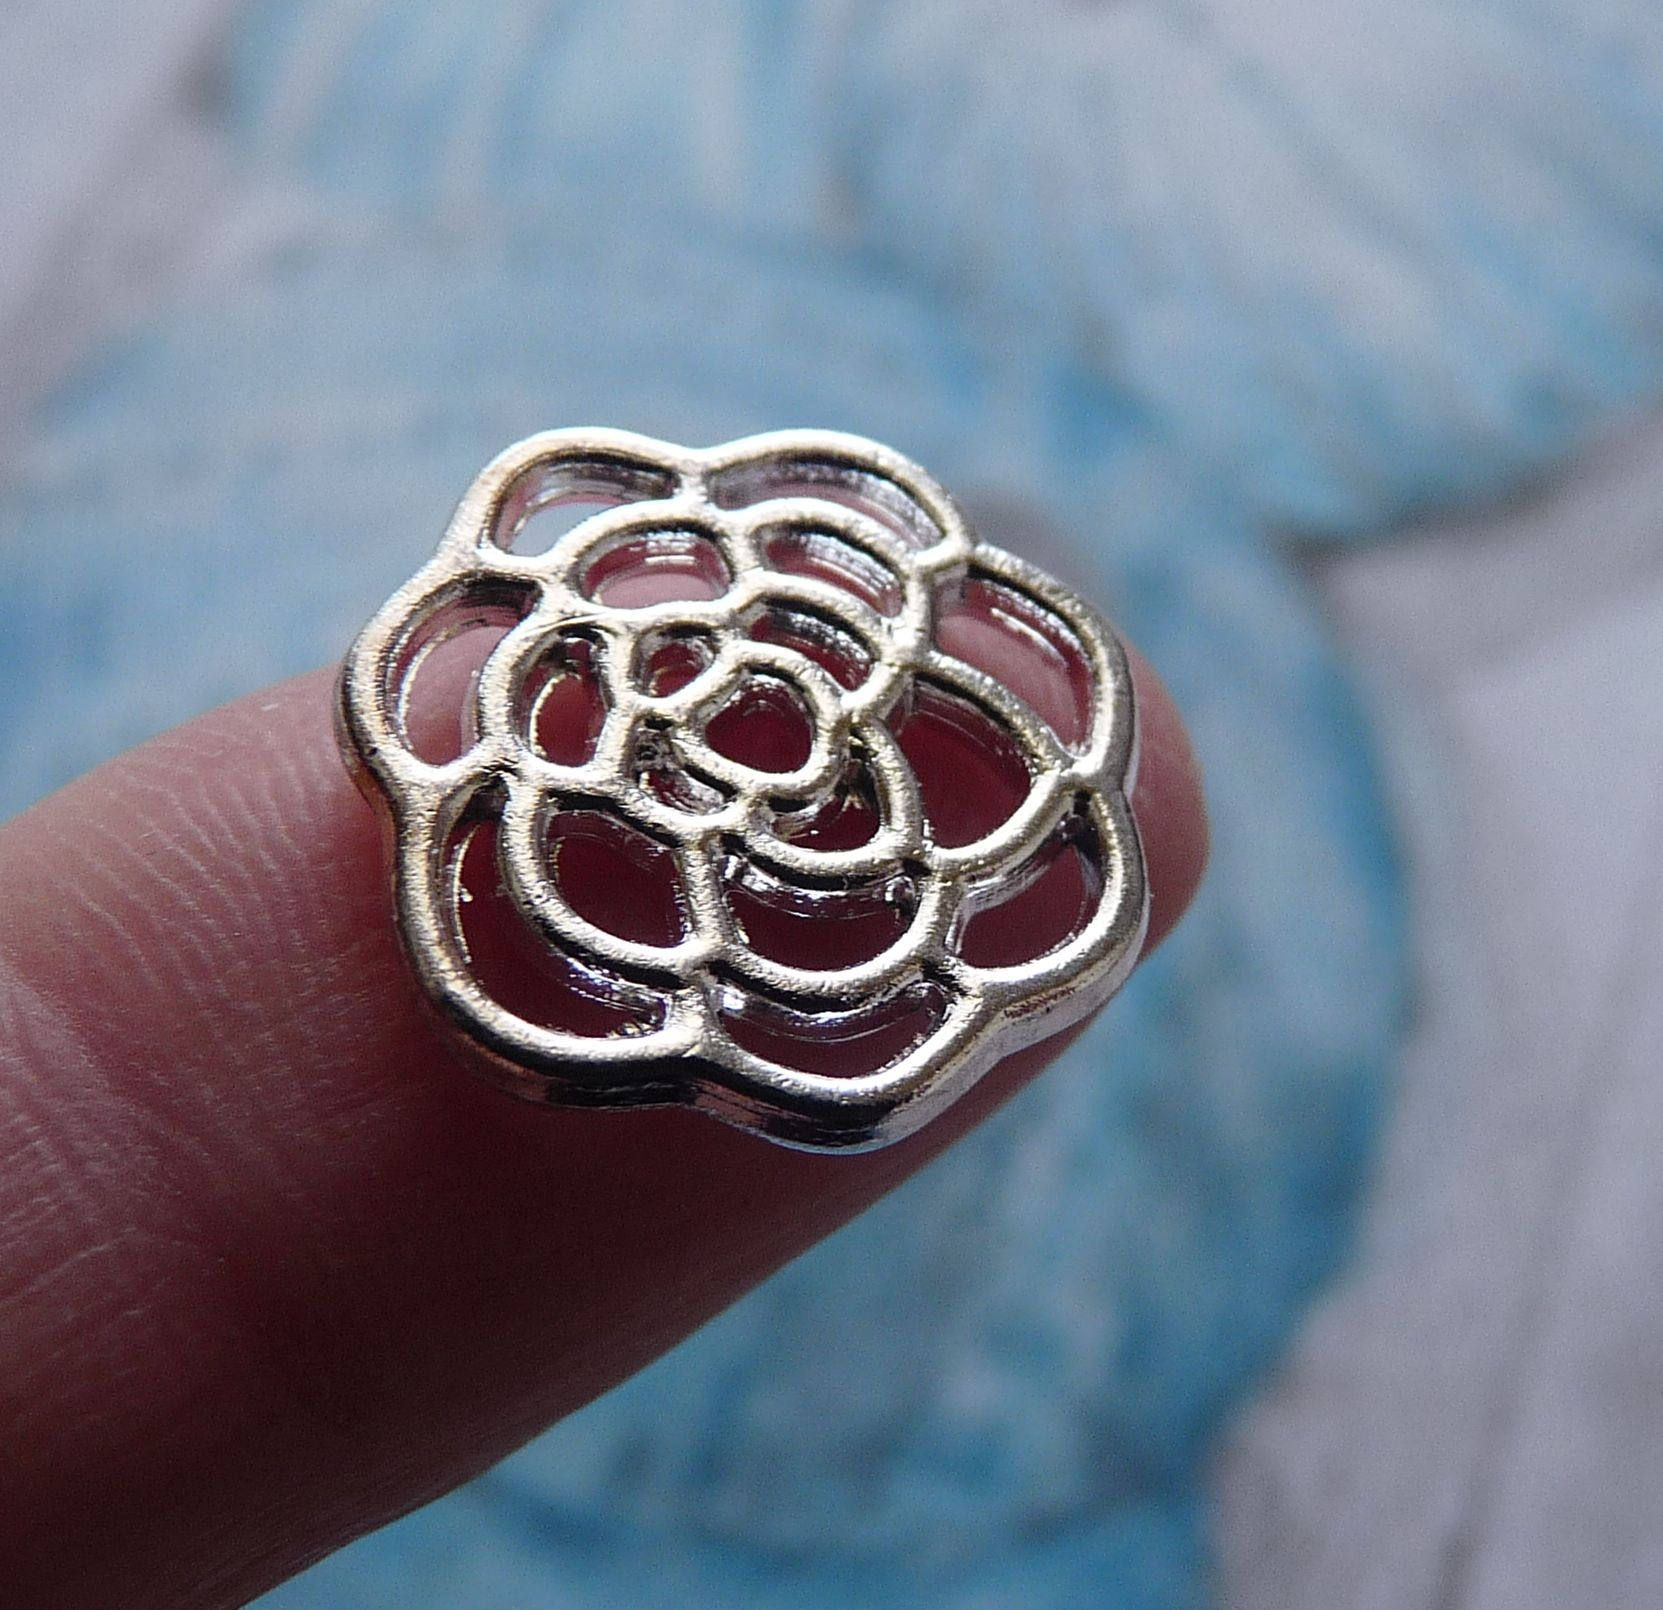 10Pcs Antique Silver Hollow Filigree Flower Charms Pendants for Jewelry Making